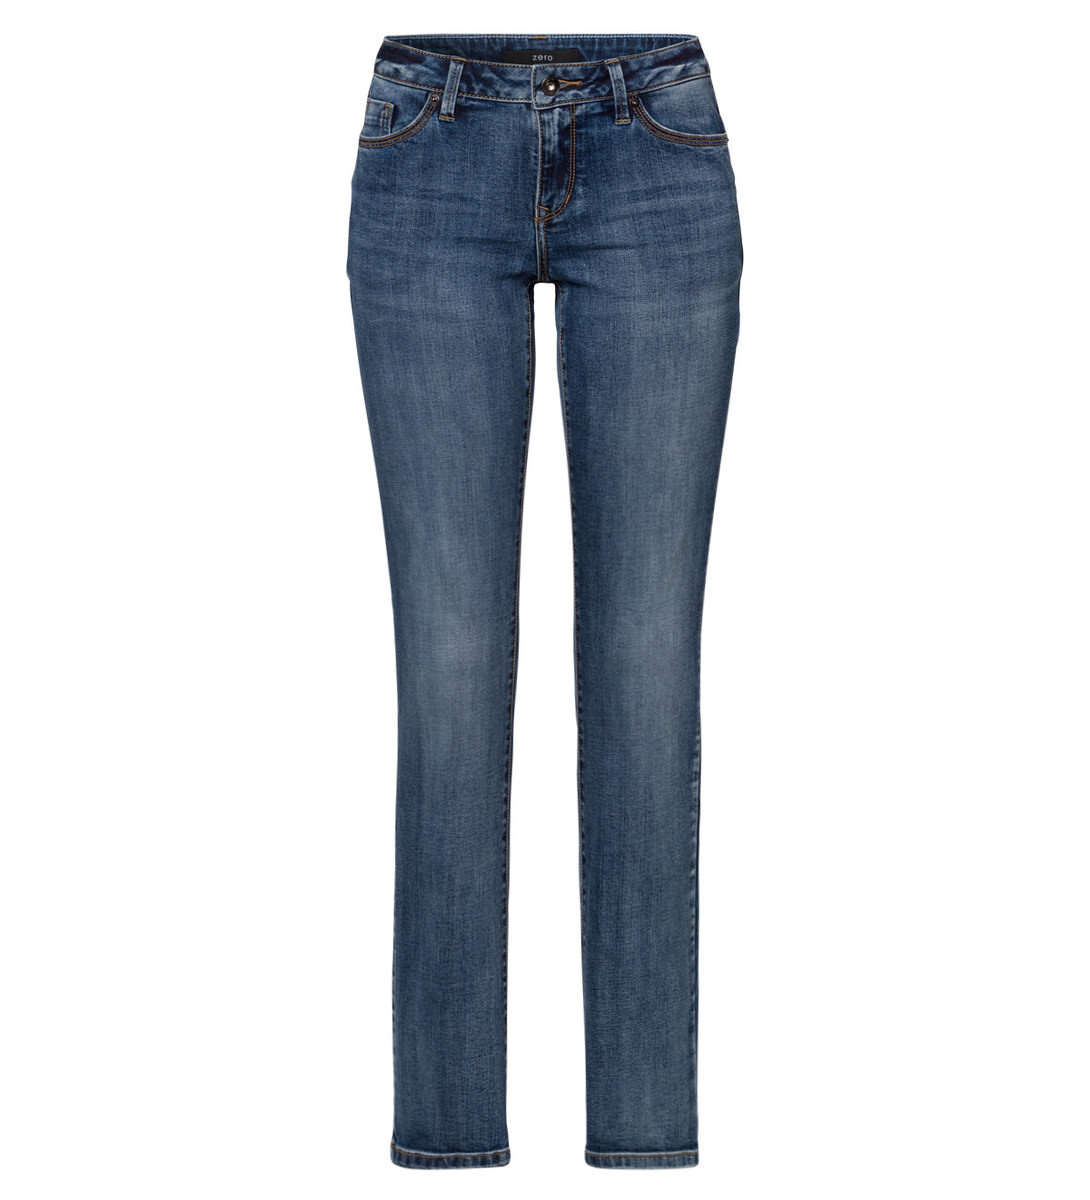 Jeans in leichter Waschung 32 Inch in mid blue wash out